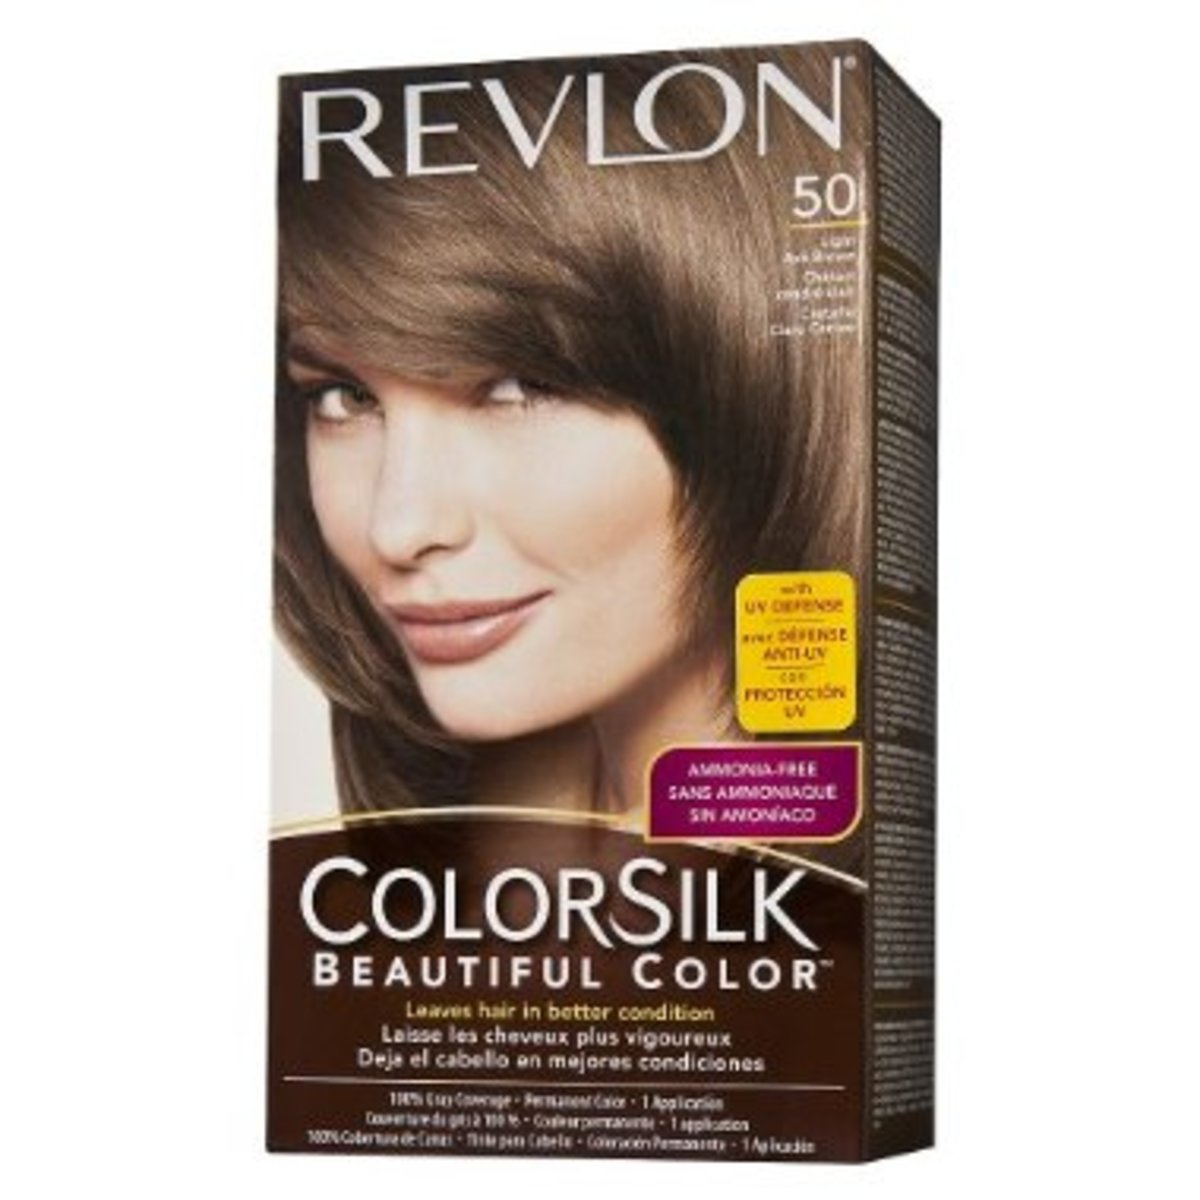 The Best Hair Color Dye For Gray Hair Coverage Coloring